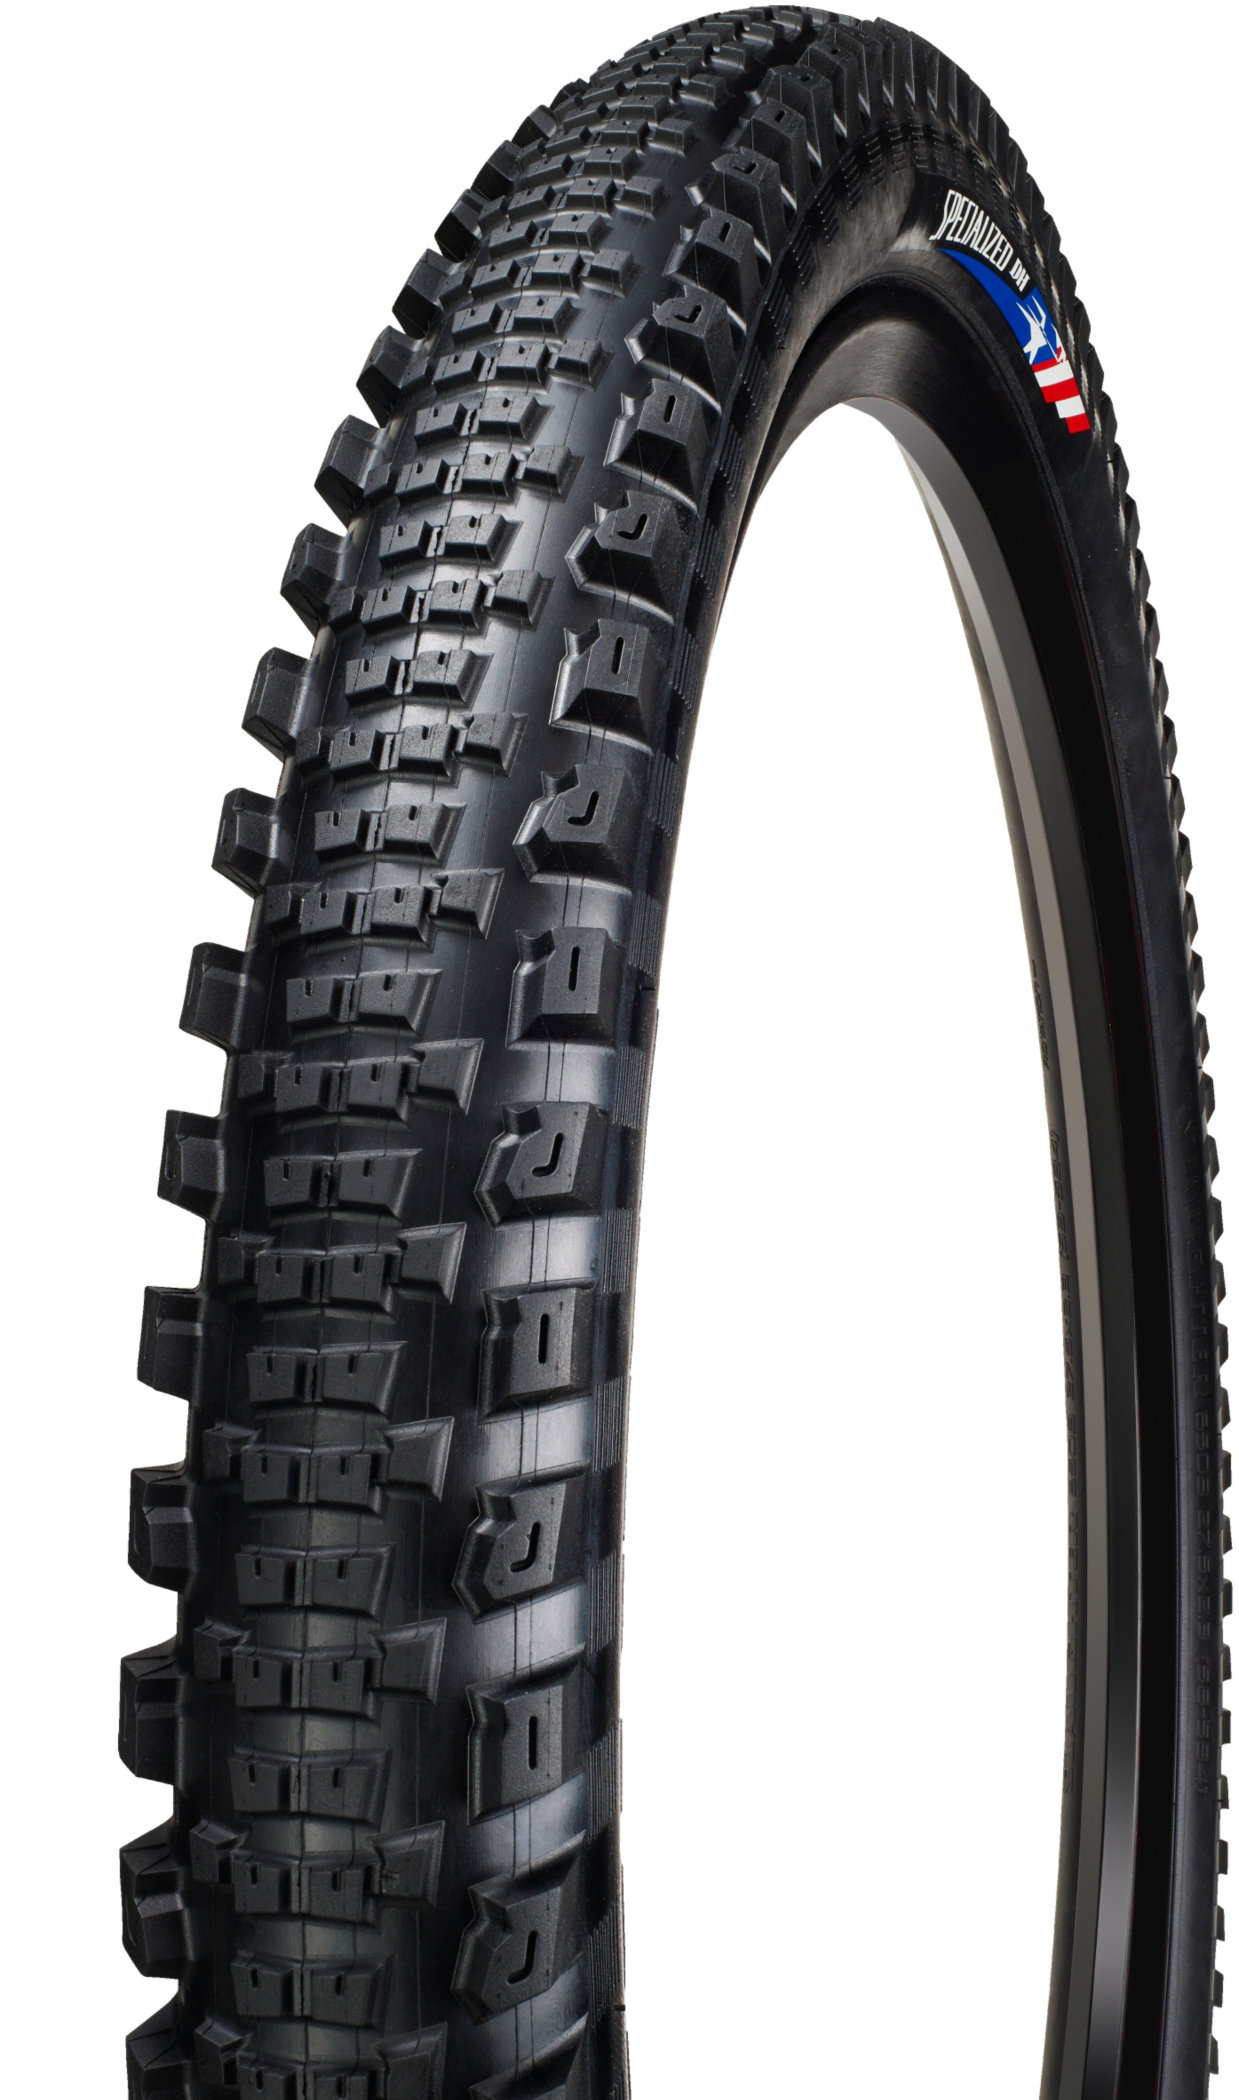 SPECIALIZED SLAUGHTER GRID 2BR TIRE 29X2.3 - SPECIALIZED SLAUGHTER GRID 2BR TIRE 29X2.3